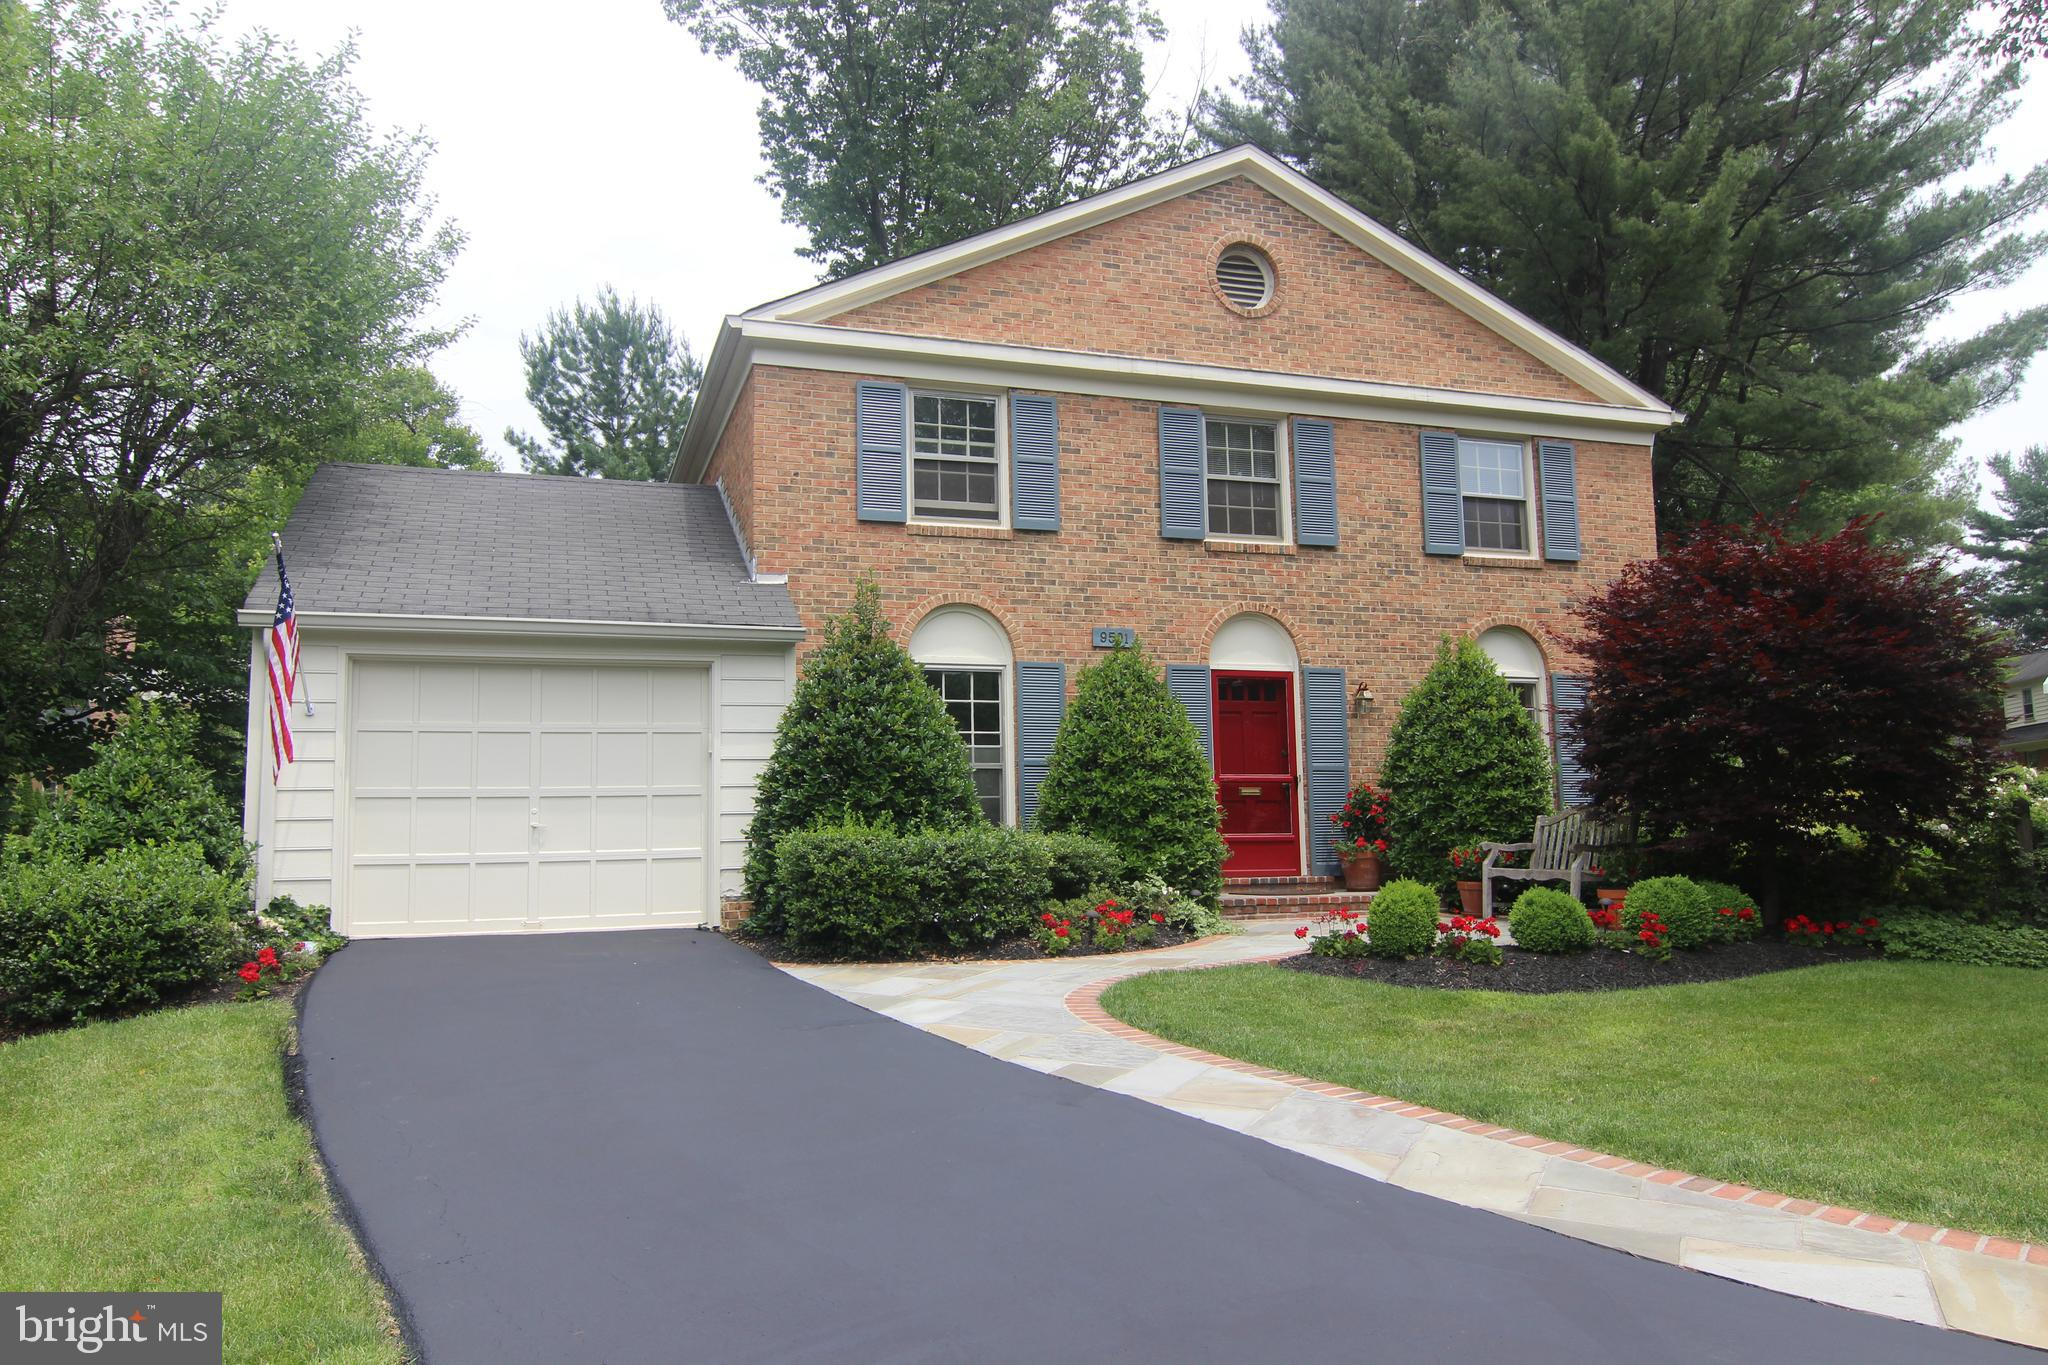 9501 APPEALS PLACE, MONTGOMERY VILLAGE, MD 20886